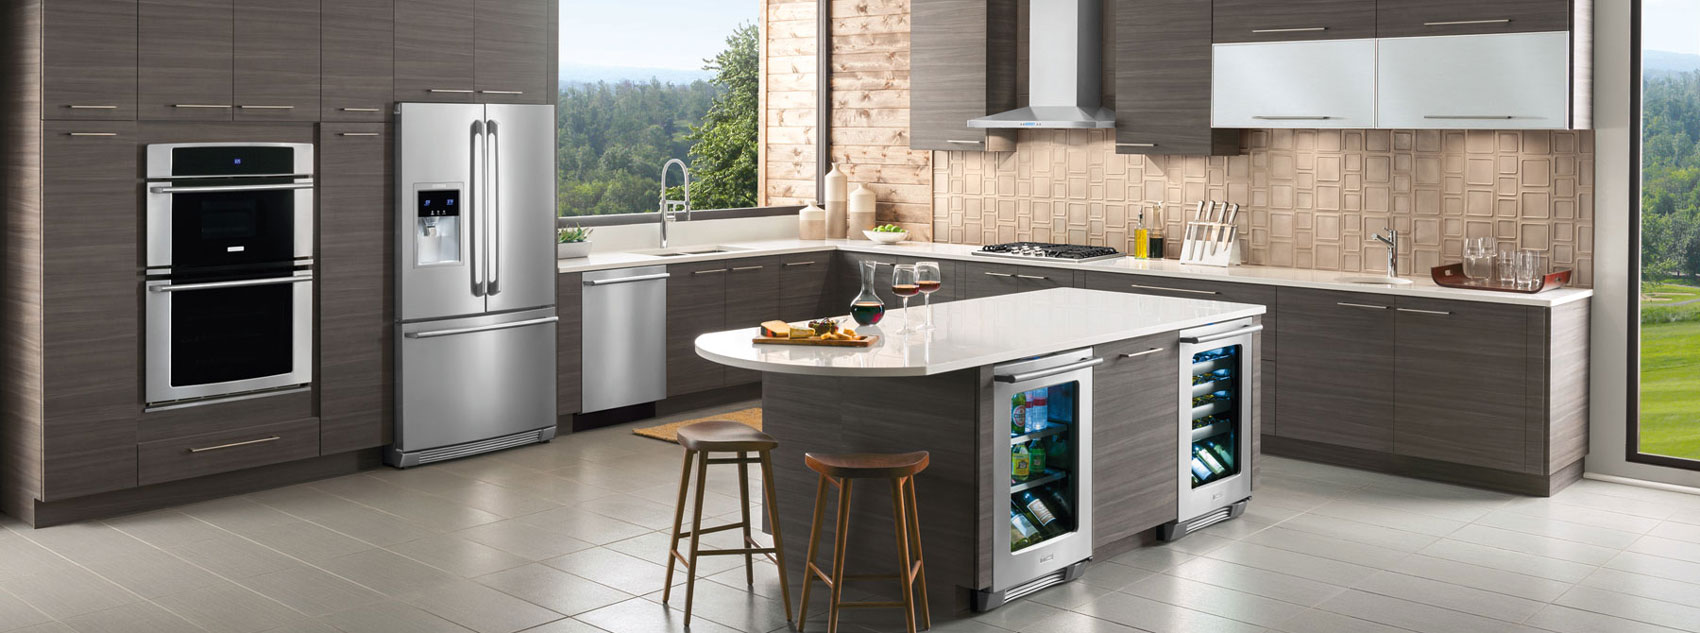 Electrolux-Kitchen-Web.jpg